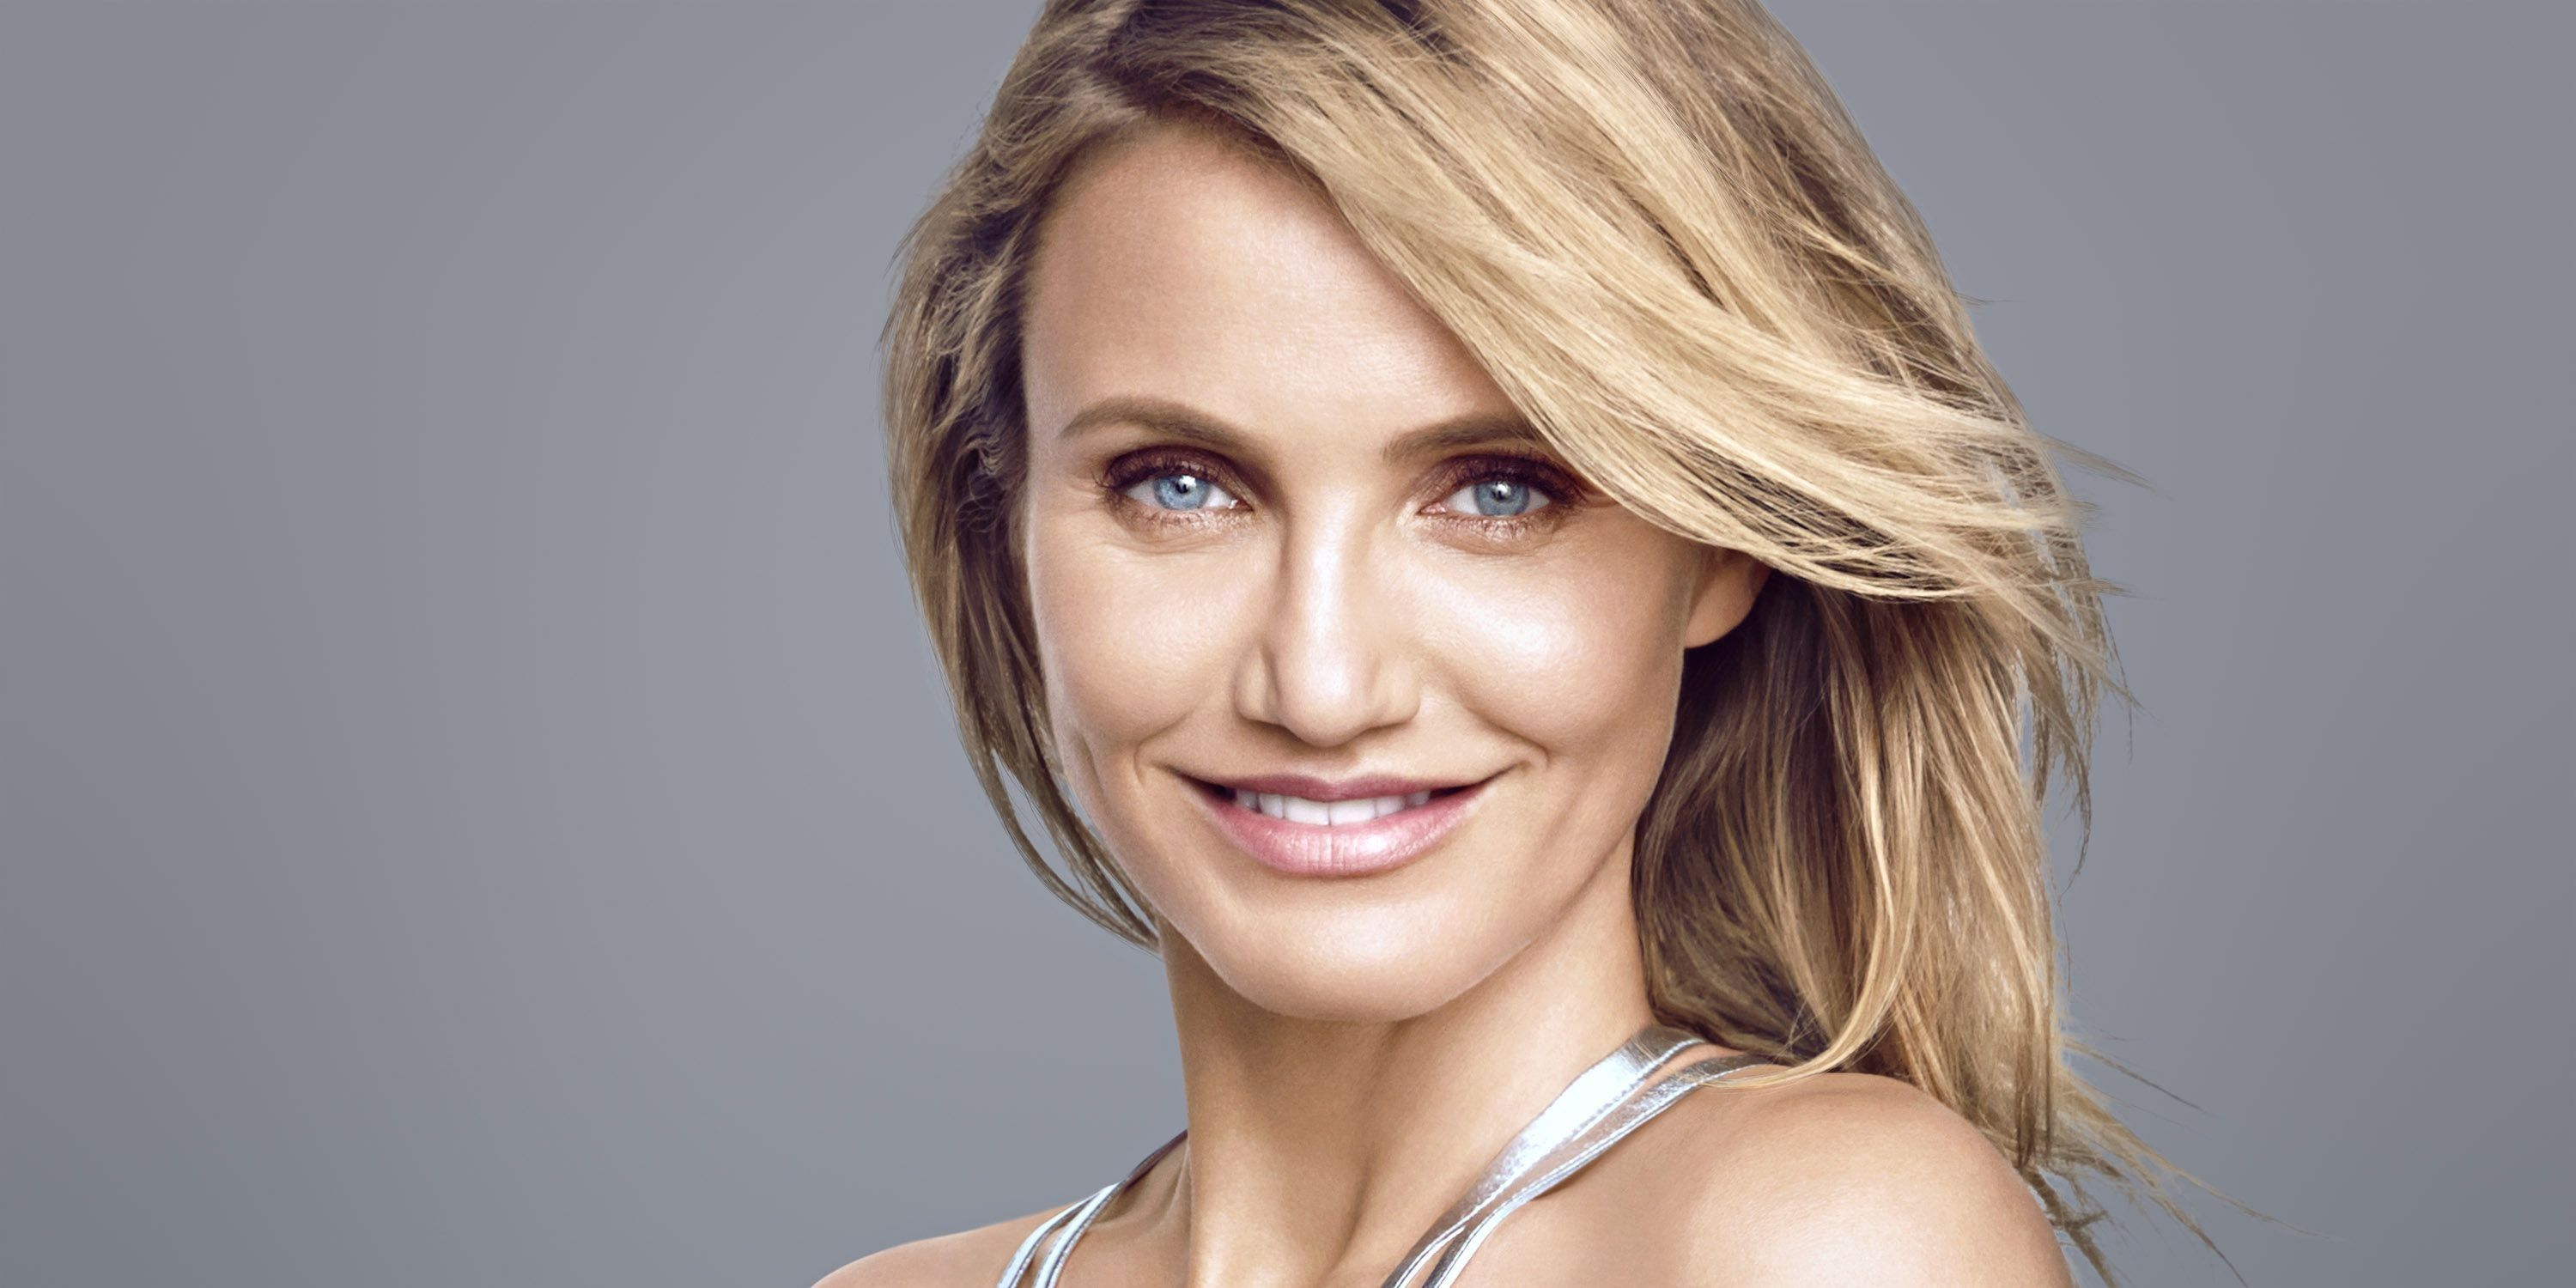 Actress Cameron Diaz may not be retiring from acting, but